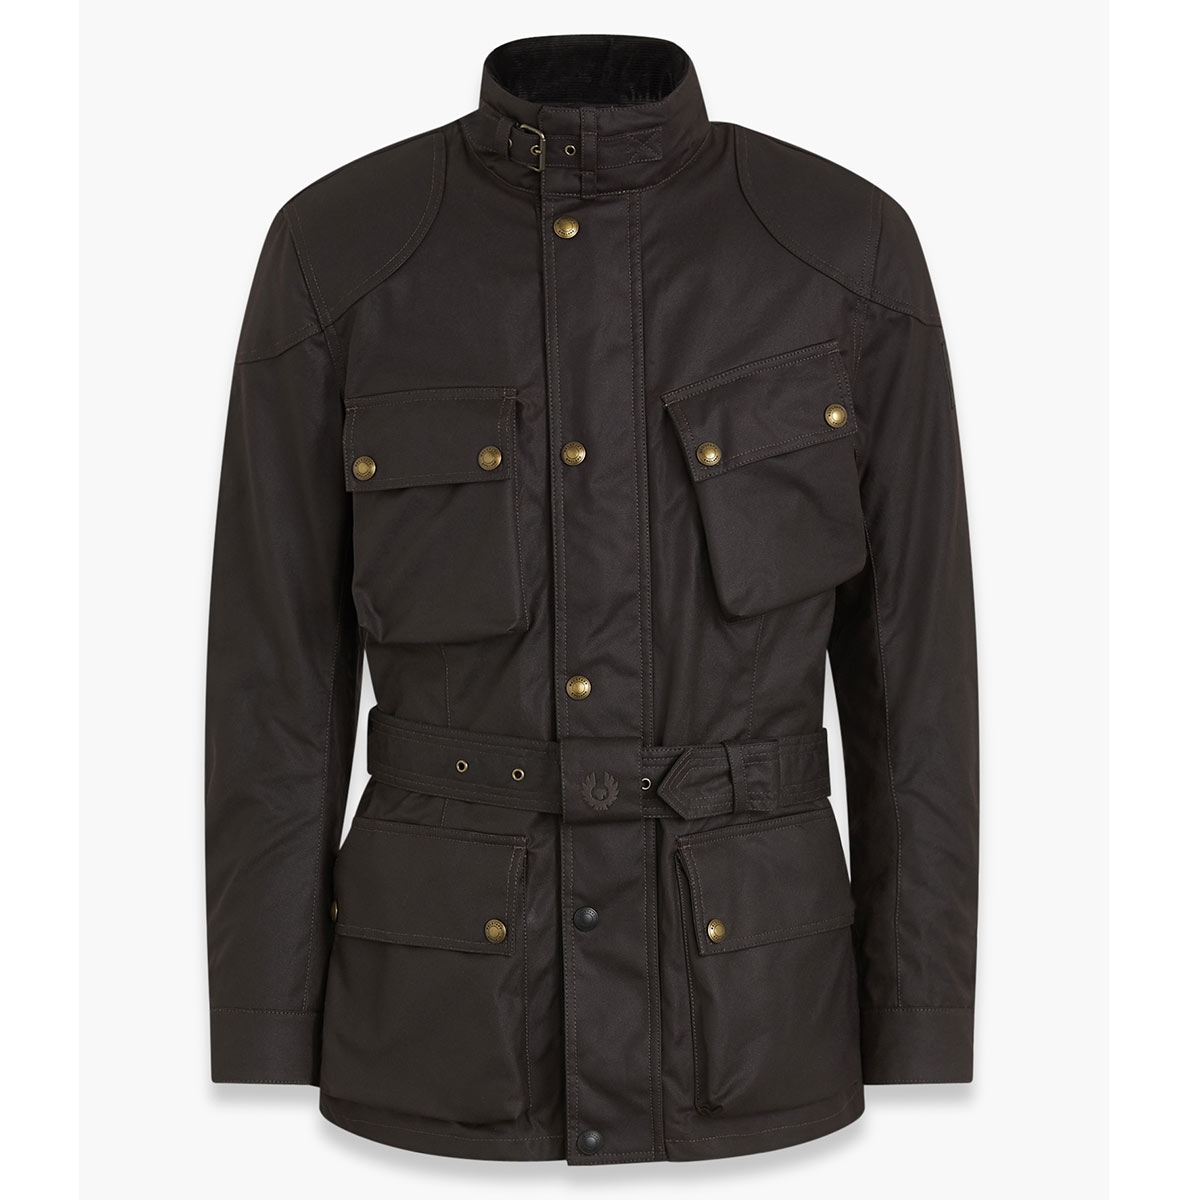 Belstaff Trialmaster Pro Waxed Cotton Jacket - Mahogany